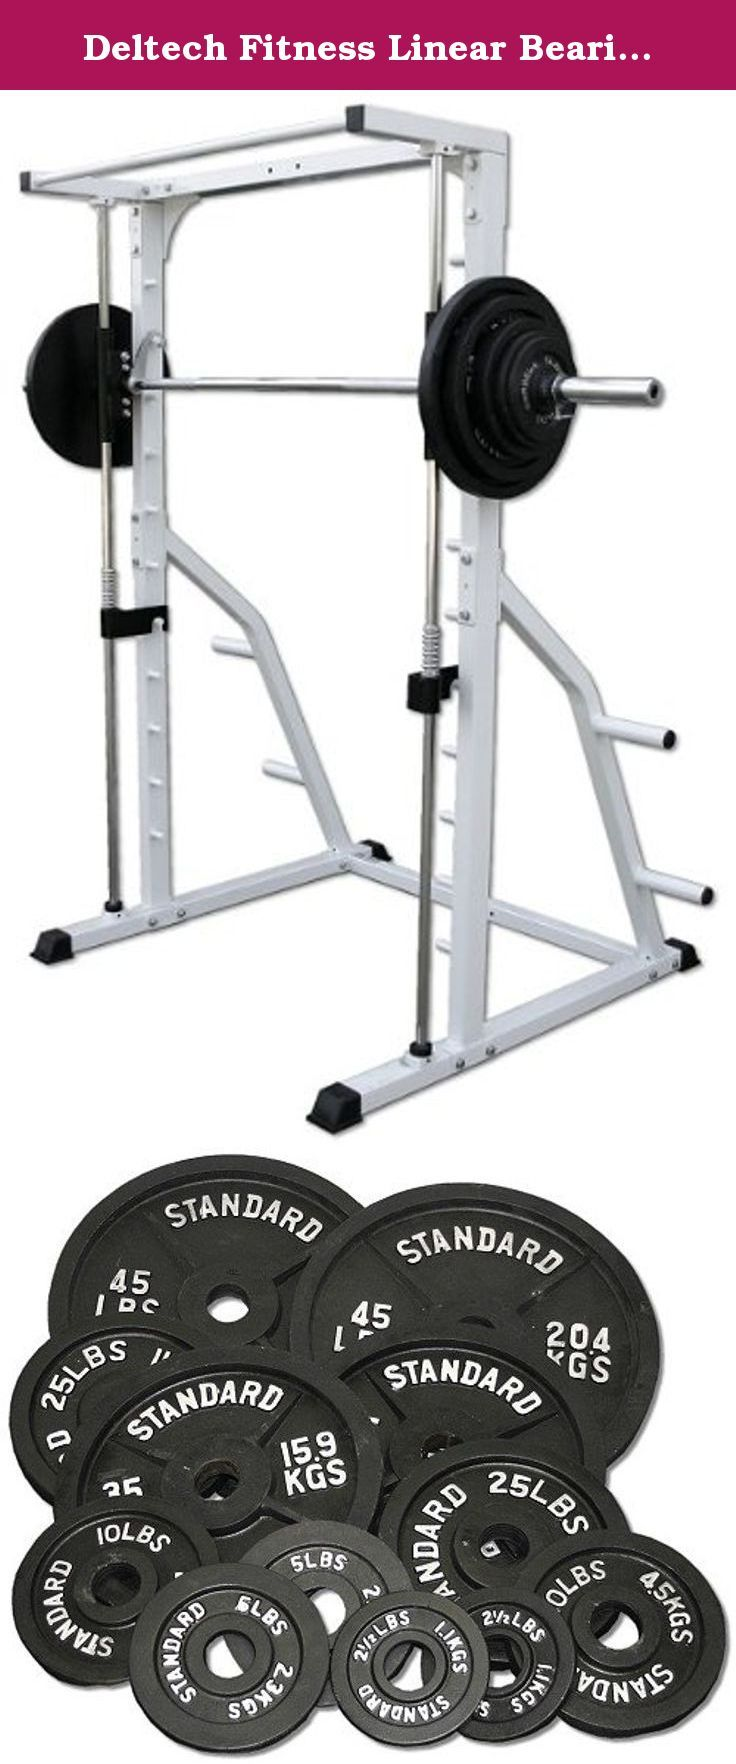 Deltech Fitness Linear Bearing Smith Machine with 245 lb. Olympic Weight Set. Includes DF4900 Linear Bearing Smith Machine by Deltech Fitness and 245 lb. Olympic Weight Set. Weight Set includes Two 2.5-lb plates, Two 5-lb plates, Two 10-lb plates, Two 25-lb plates, Two 35-lb plates, and Two 45-lb plates.